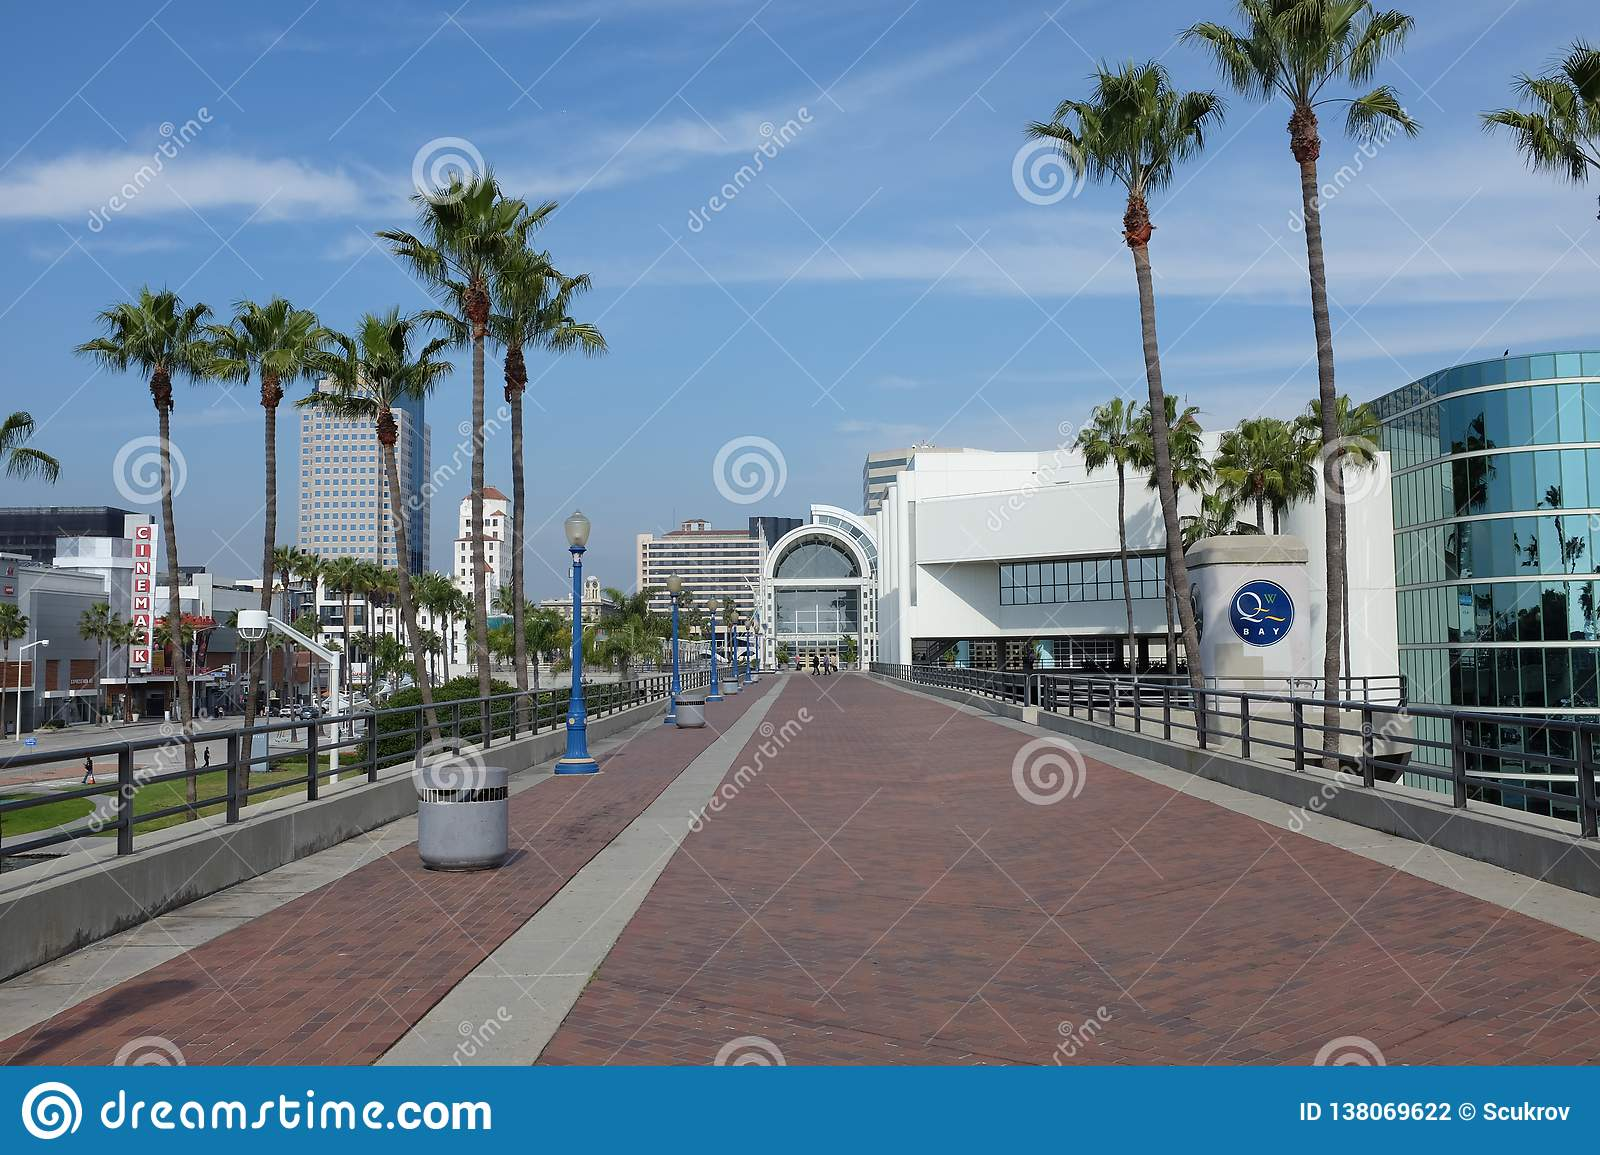 Promenade at the Long Beach Convention Center.